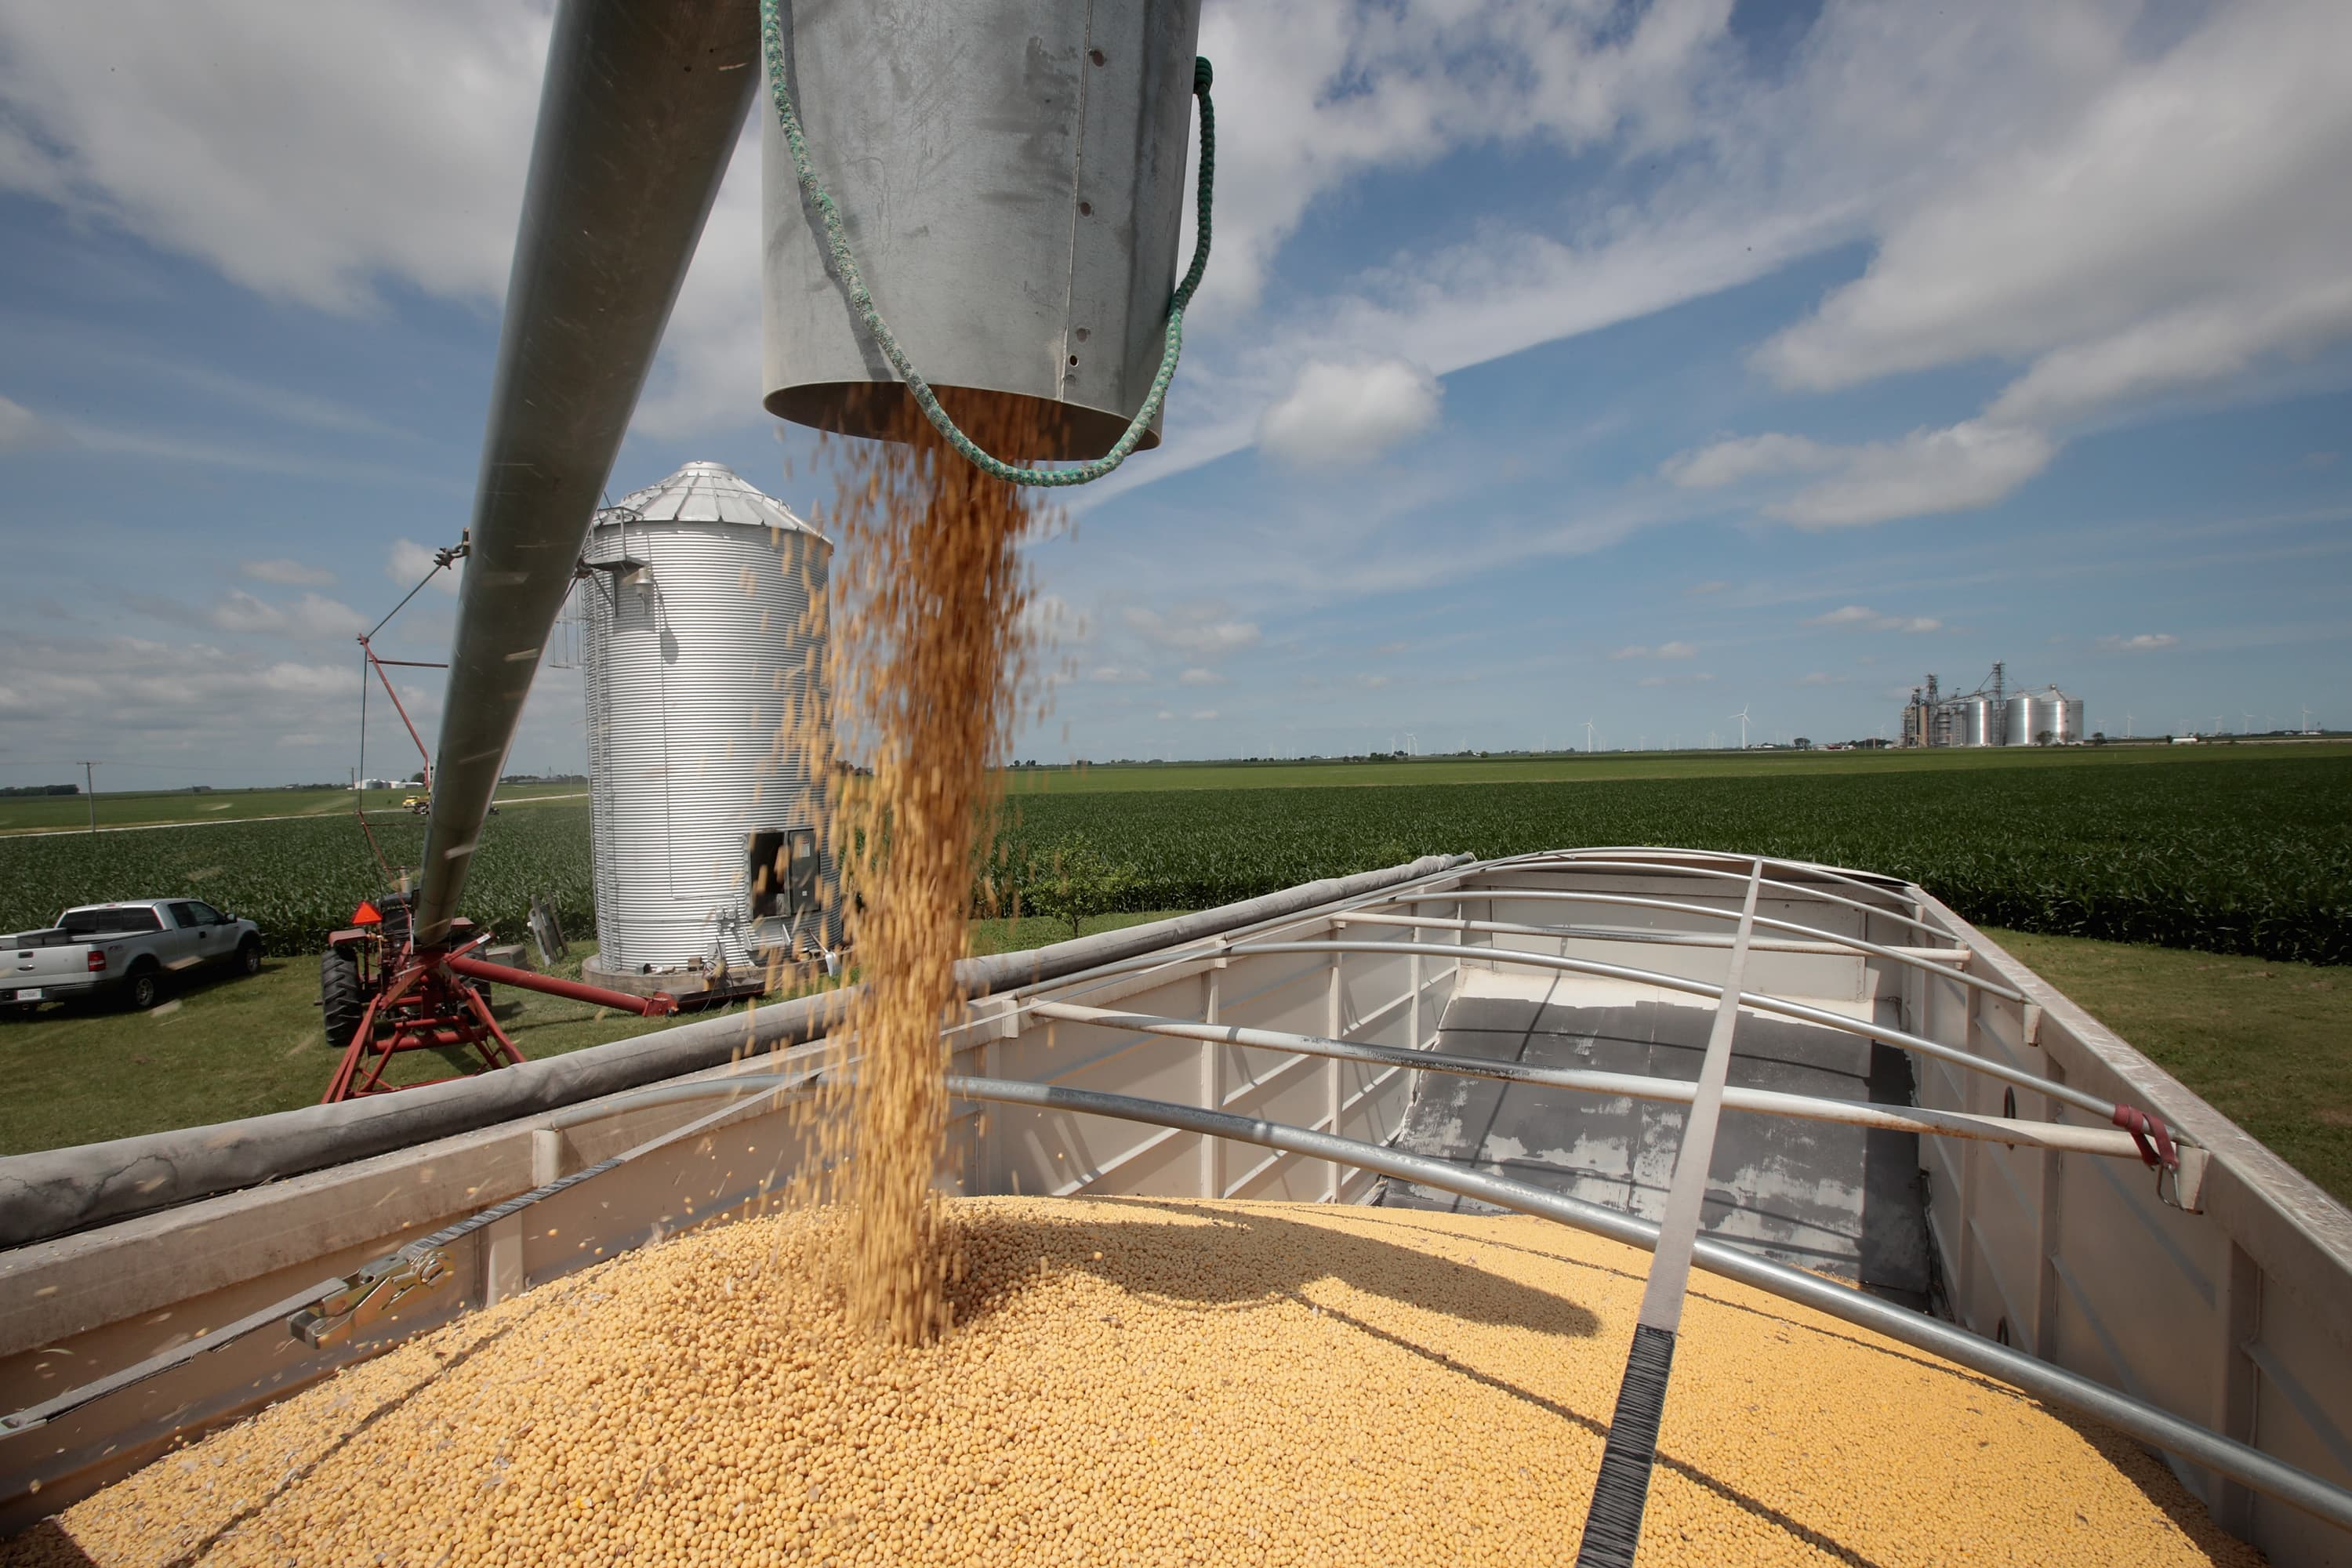 Partial trade deal will help US soybean farmers retake Chinese market share, trade group executive says